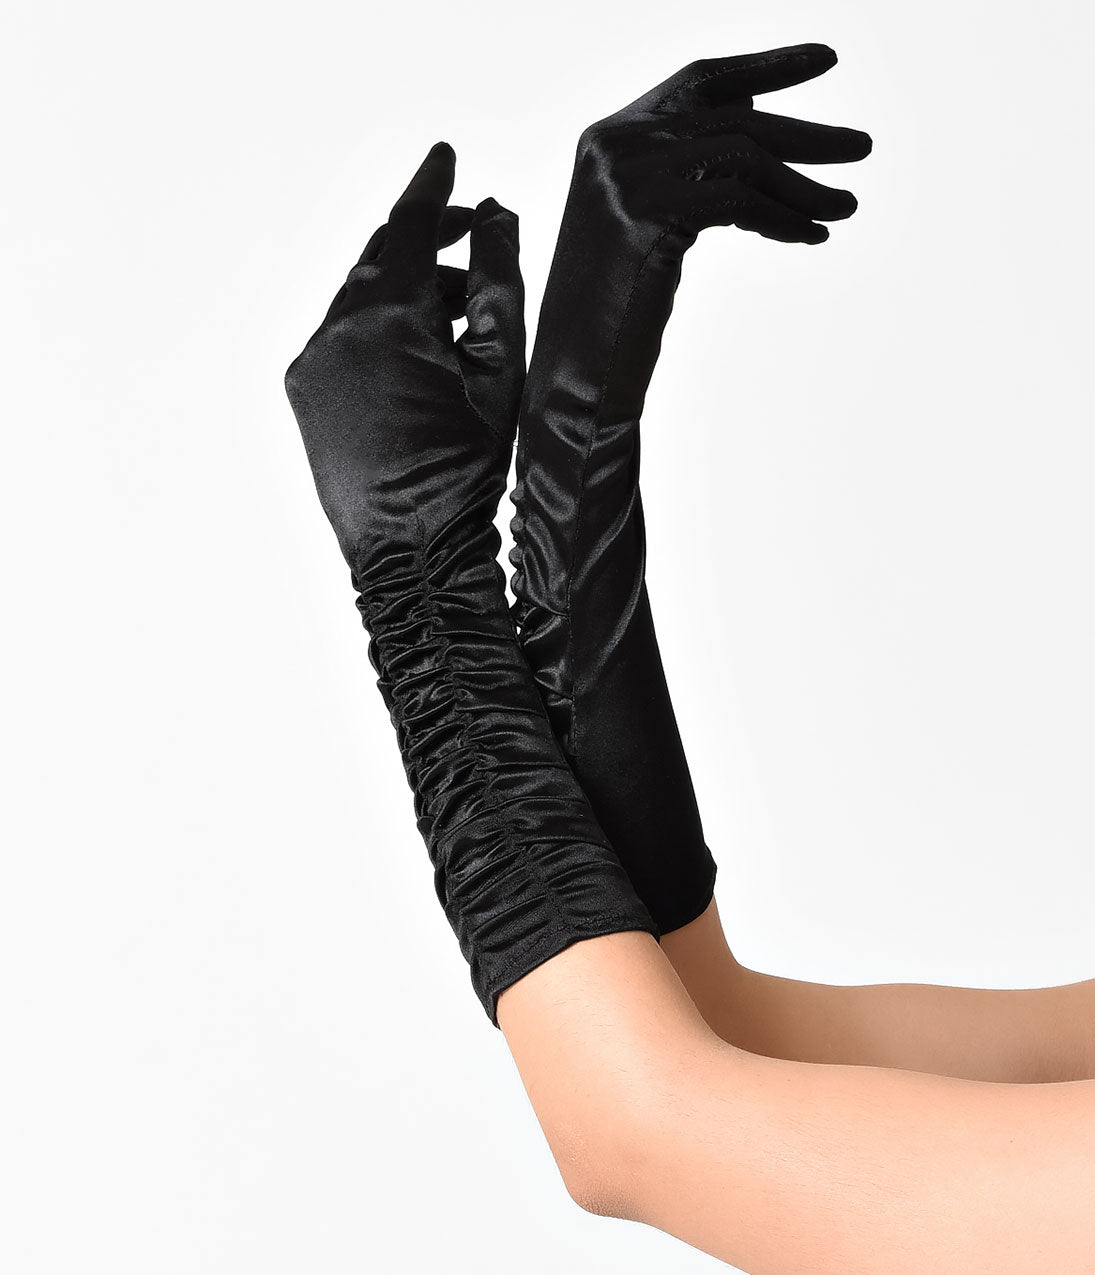 Vintage Gloves History- 1900, 1910, 1920, 1930 1940, 1950, 1960 Unique Vintage Black Ruched Satin Long Gloves $16.00 AT vintagedancer.com